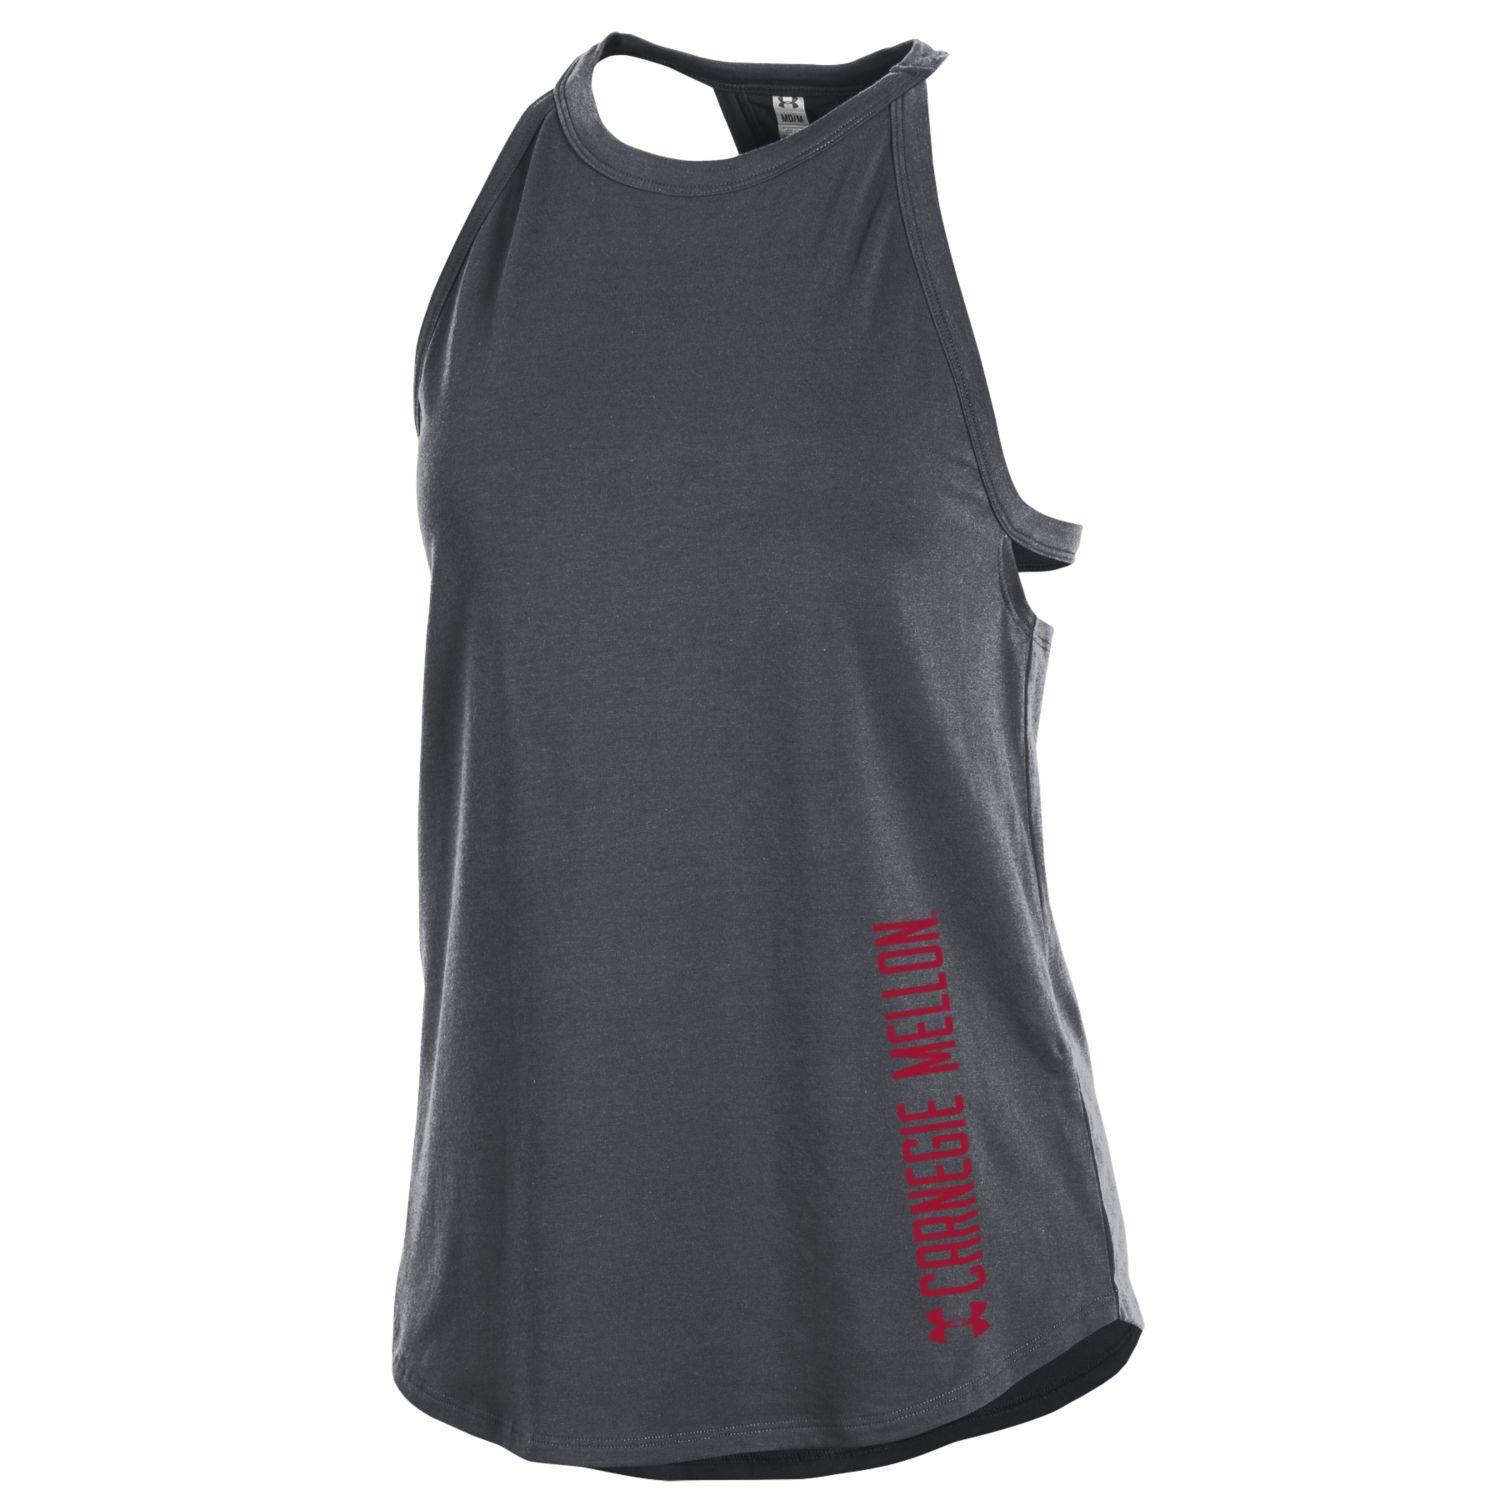 Under Armour Charged Tank: Charcoal